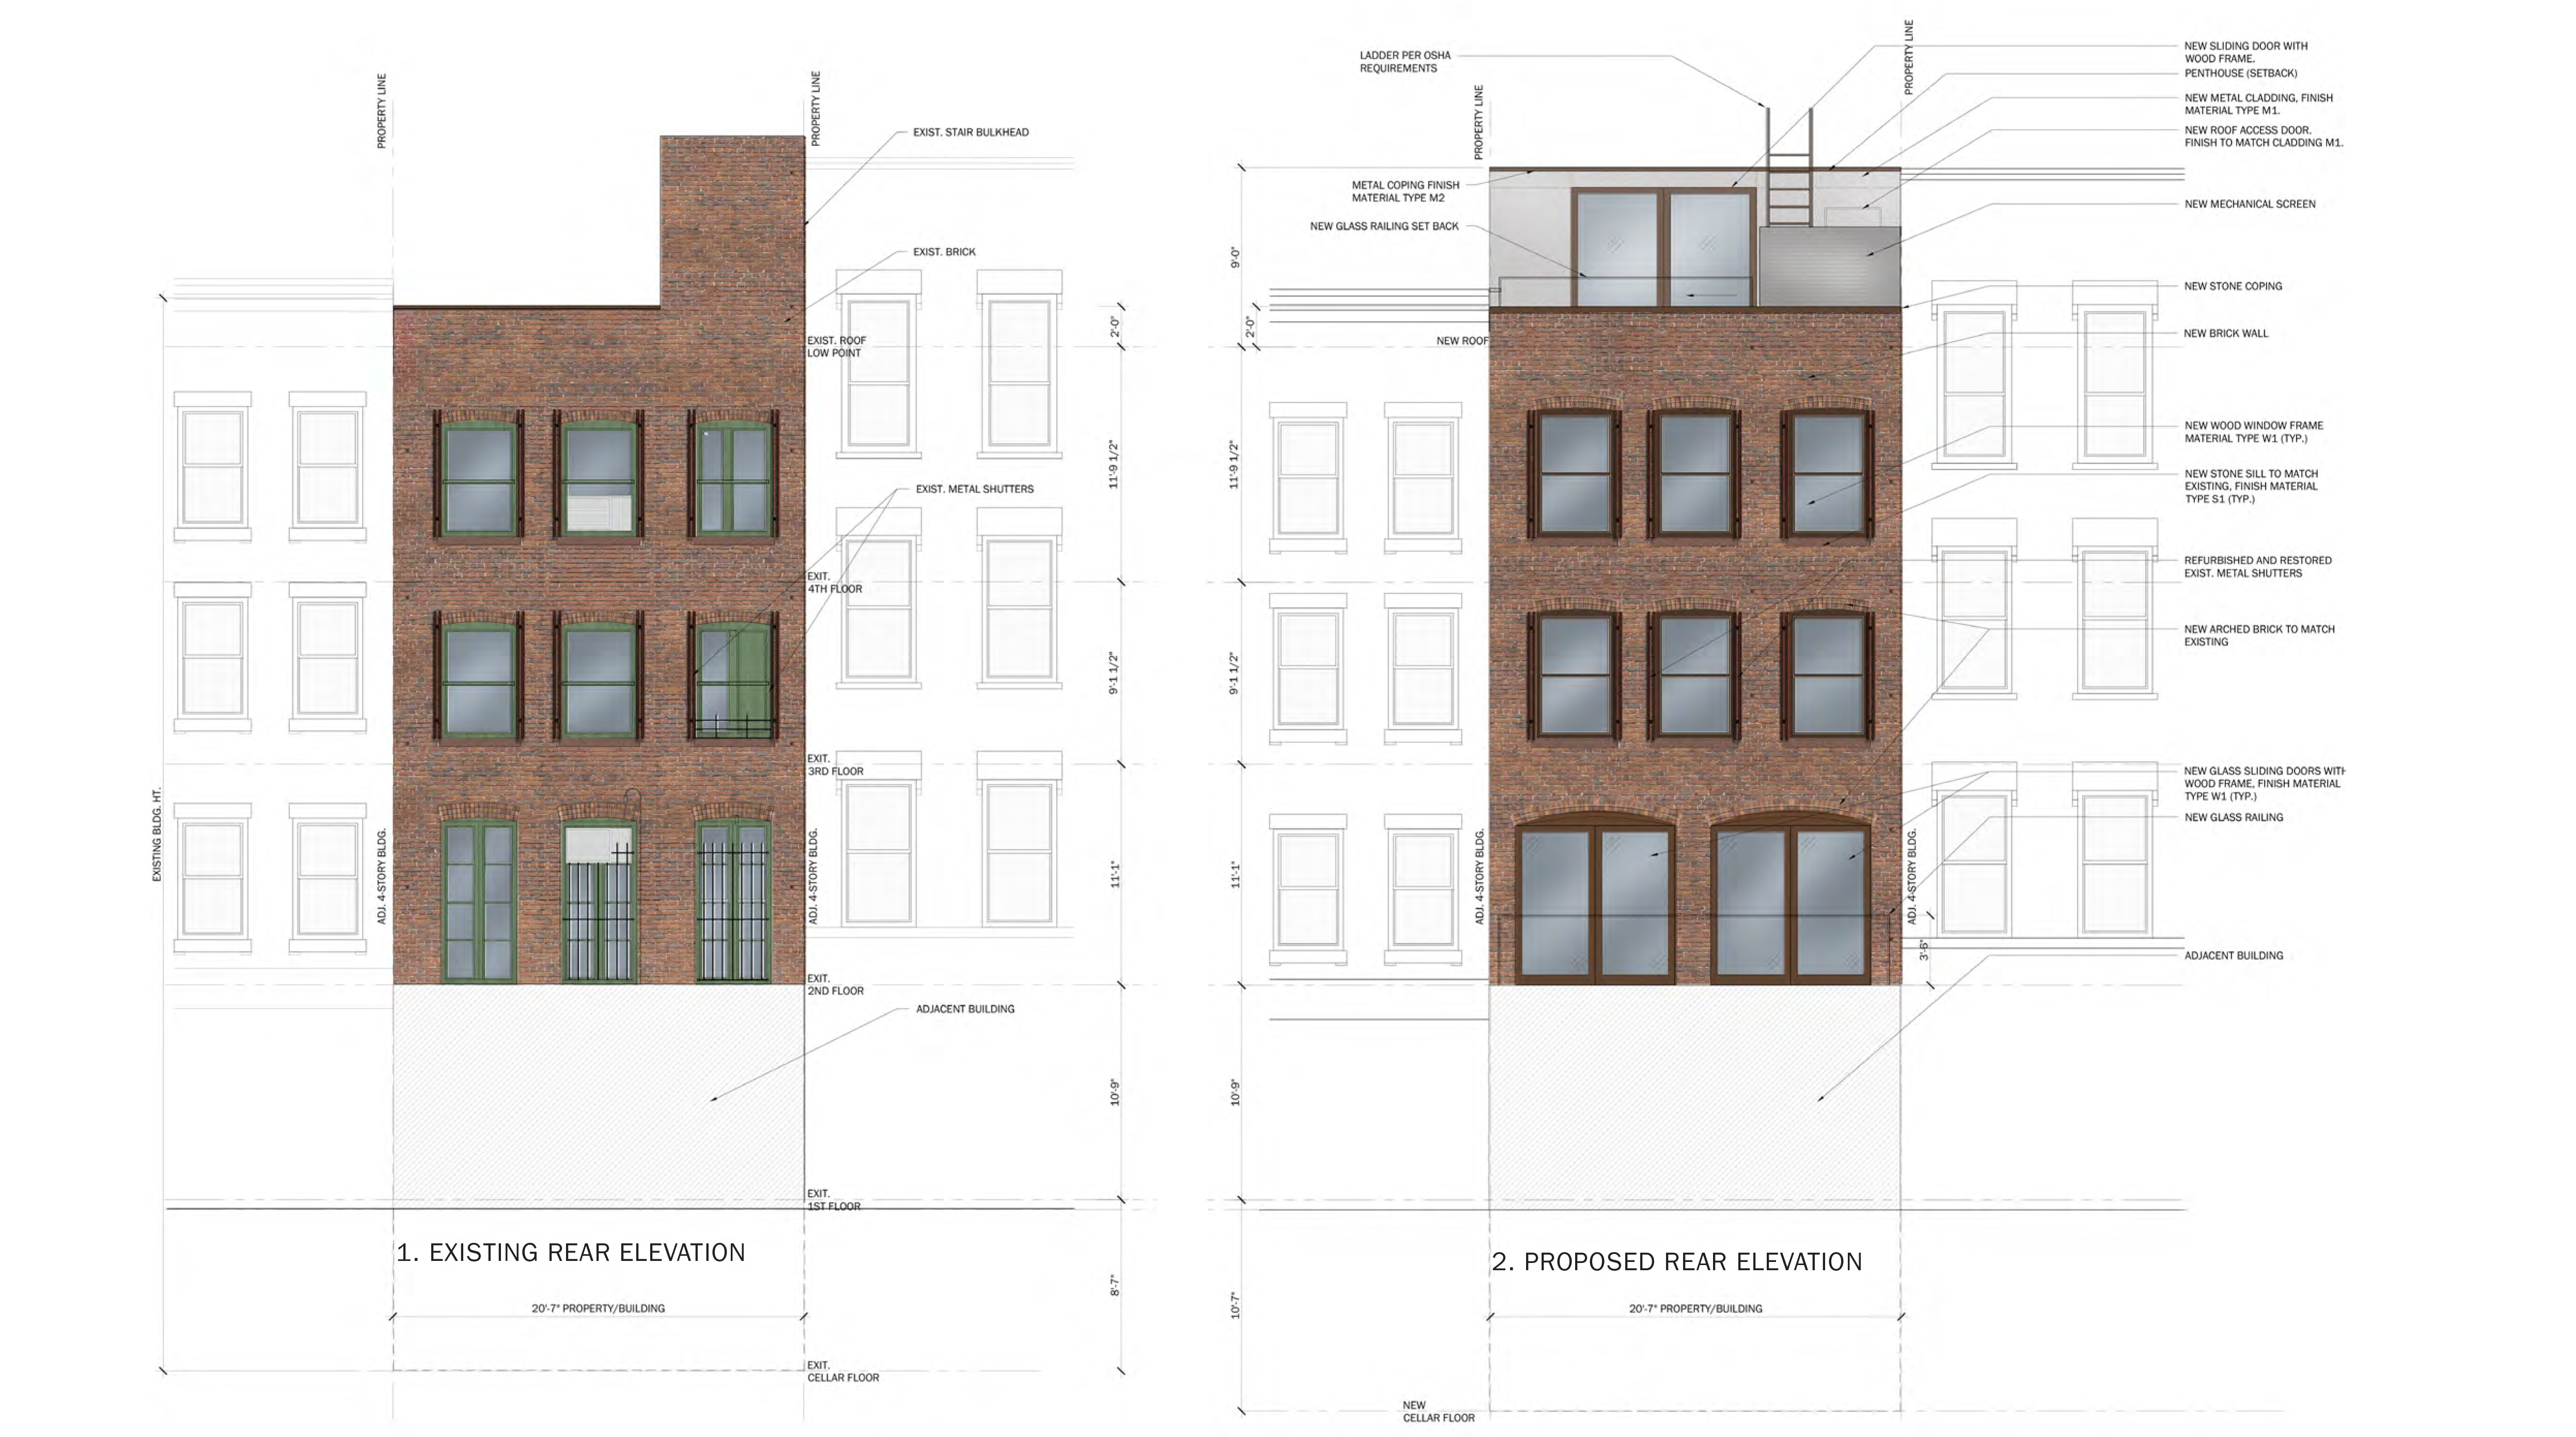 353 Sixth Avenue, existing and proposed rear